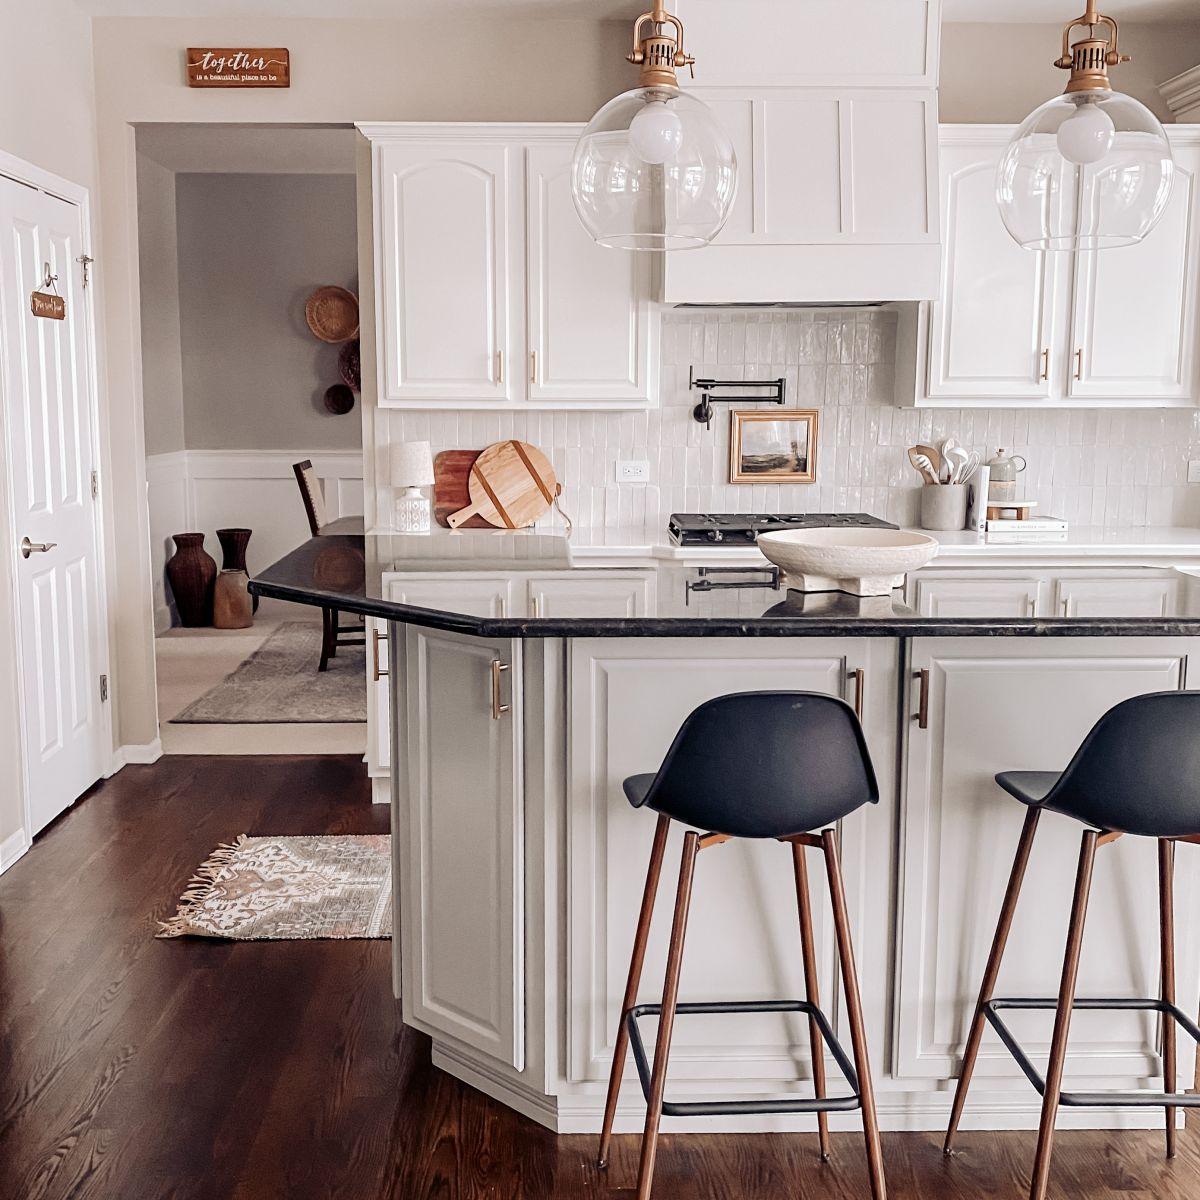 3 ways to remodel your space this weekend, no power tools required